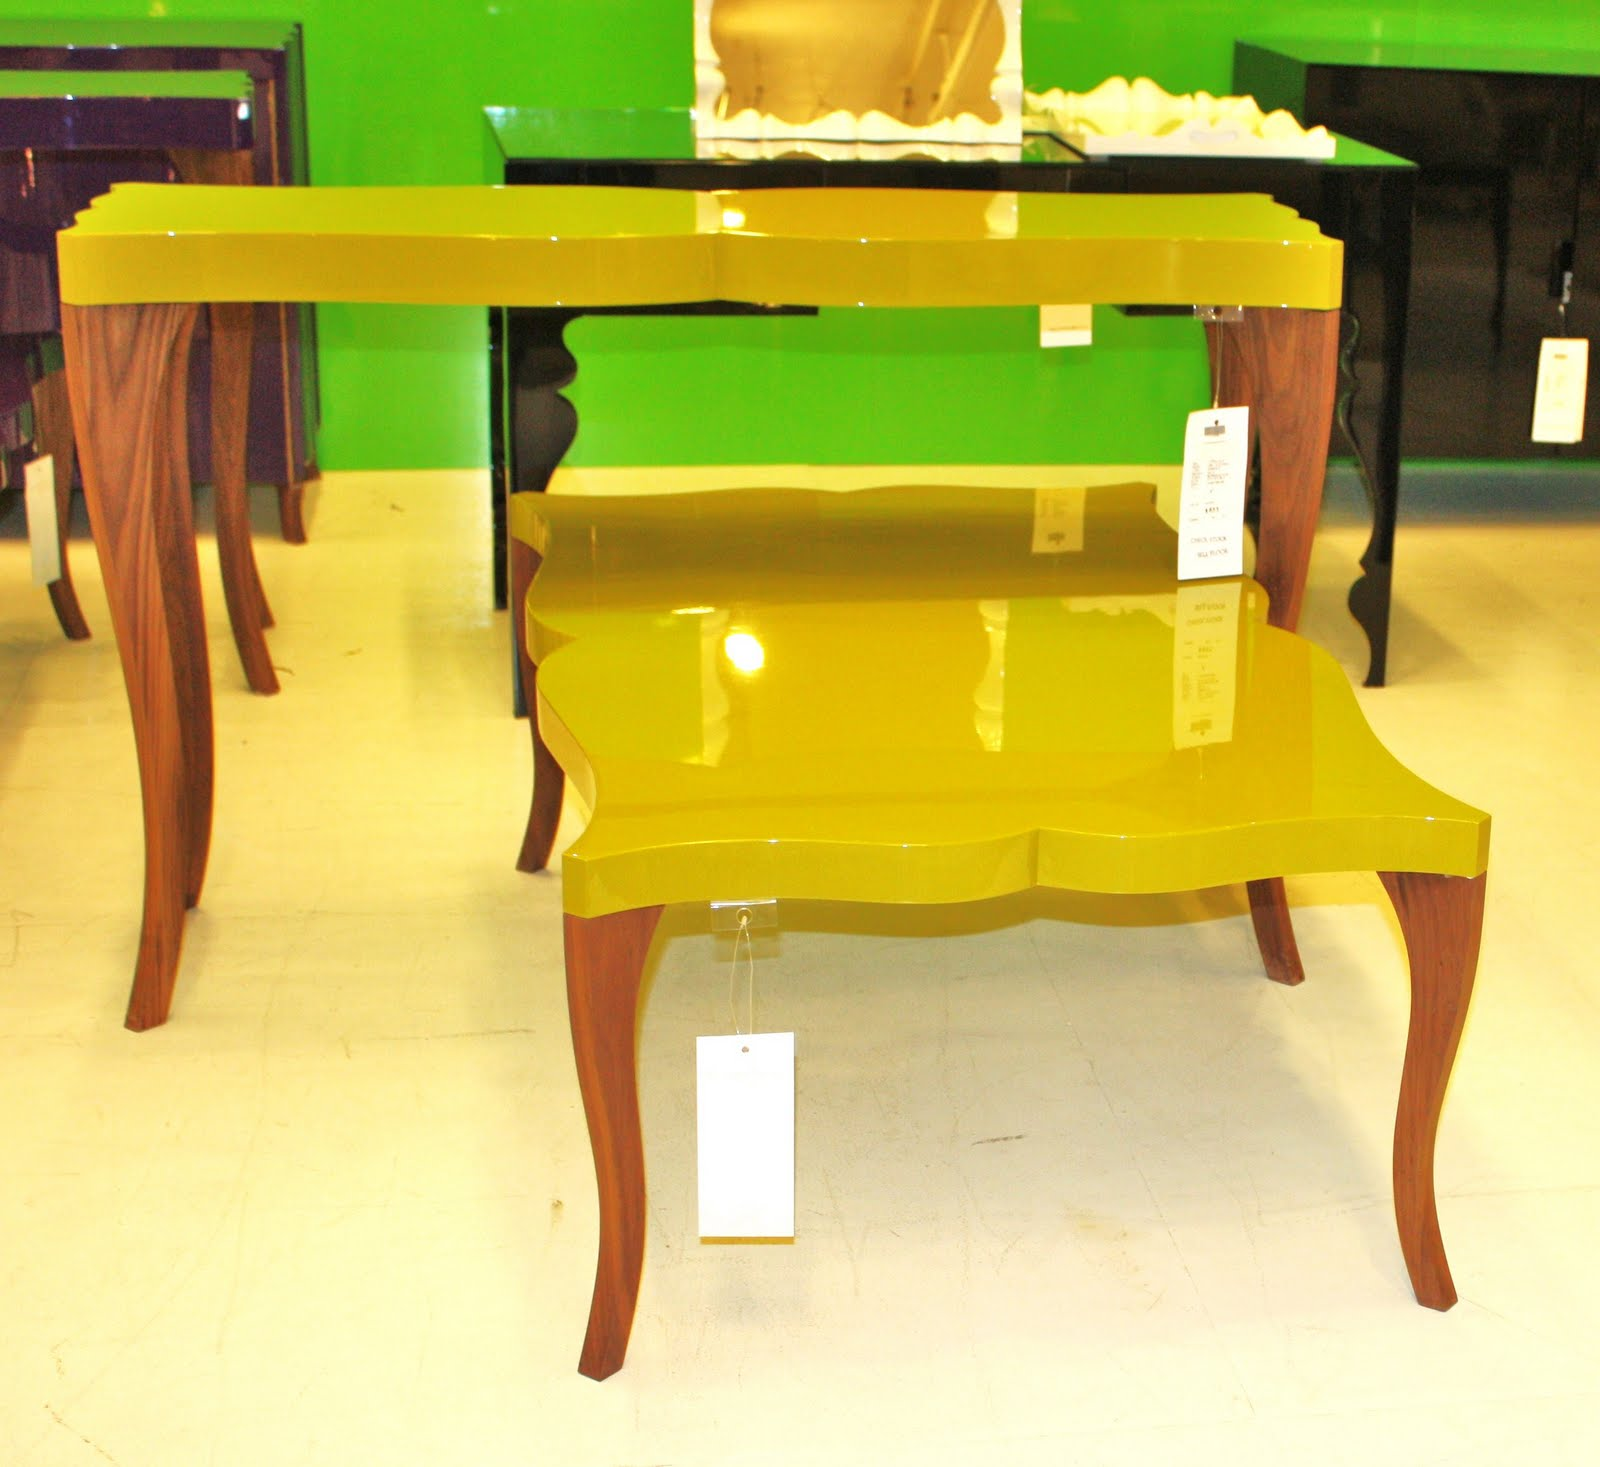 Traditional End Tables Are Easy To Come By At Thrift Stores But Taping Off  The Legs And Painting Only The Top In A Bright Lacquer Is A Quick Way To ...